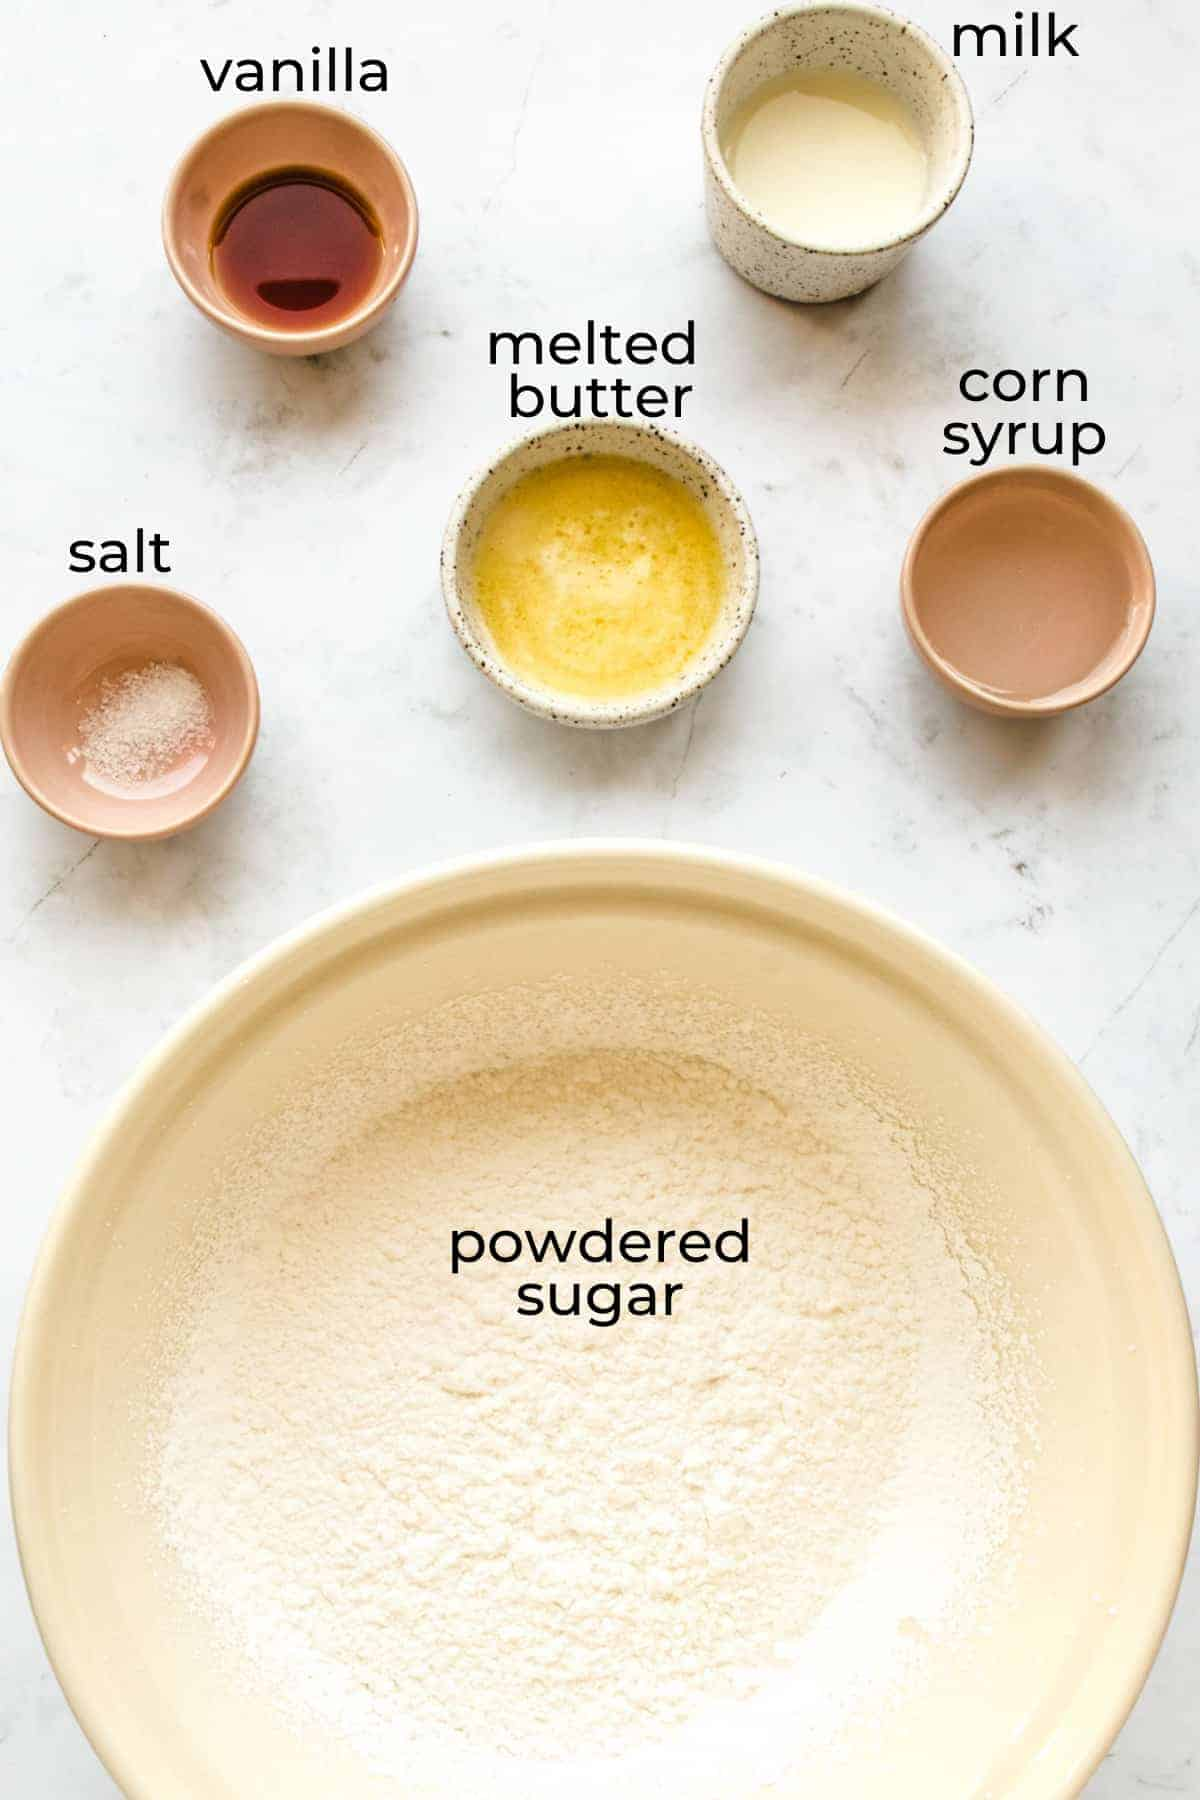 ingredients needed to make thick vanilla glaze for donuts